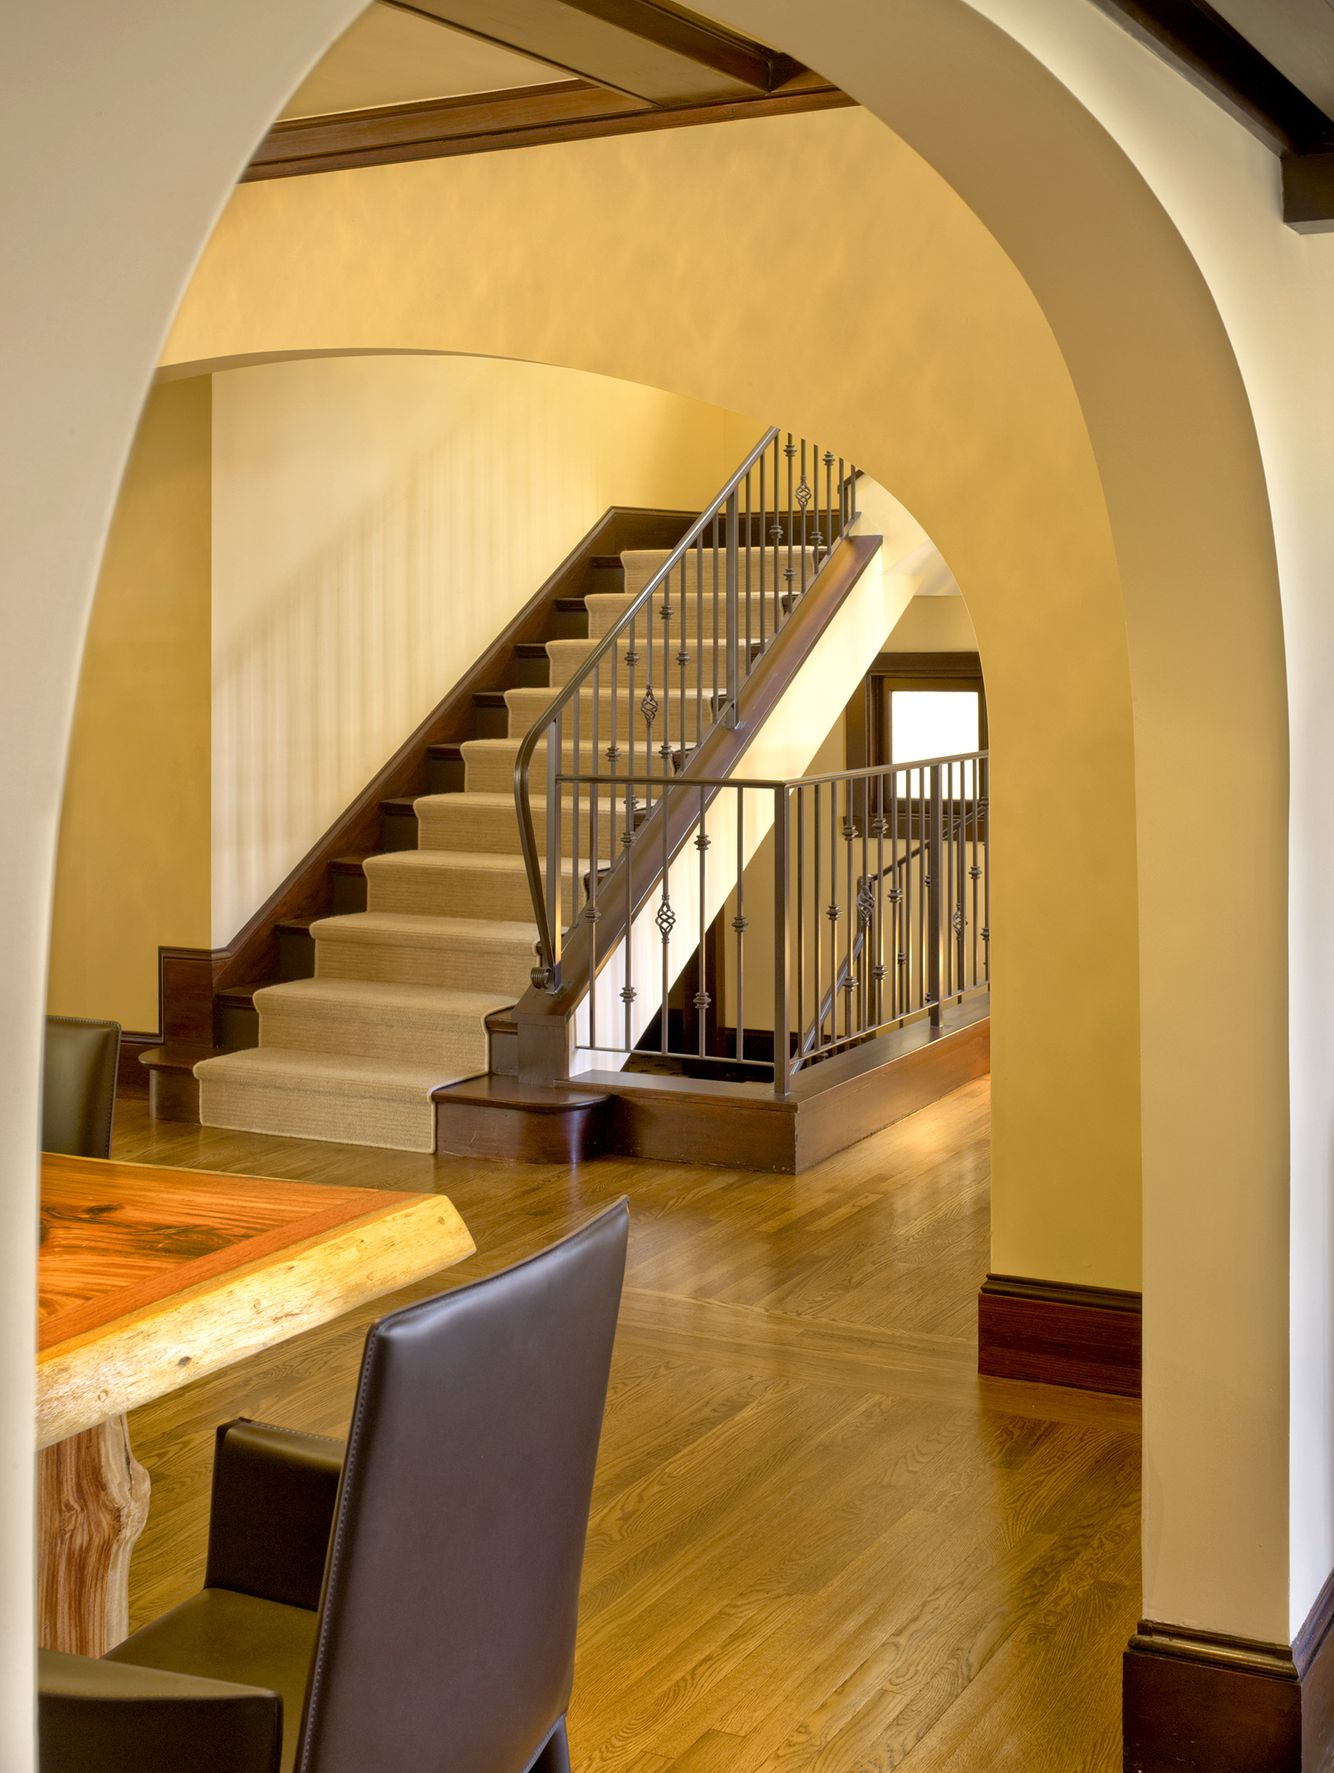 John Sutton Photography - Residential Stairway